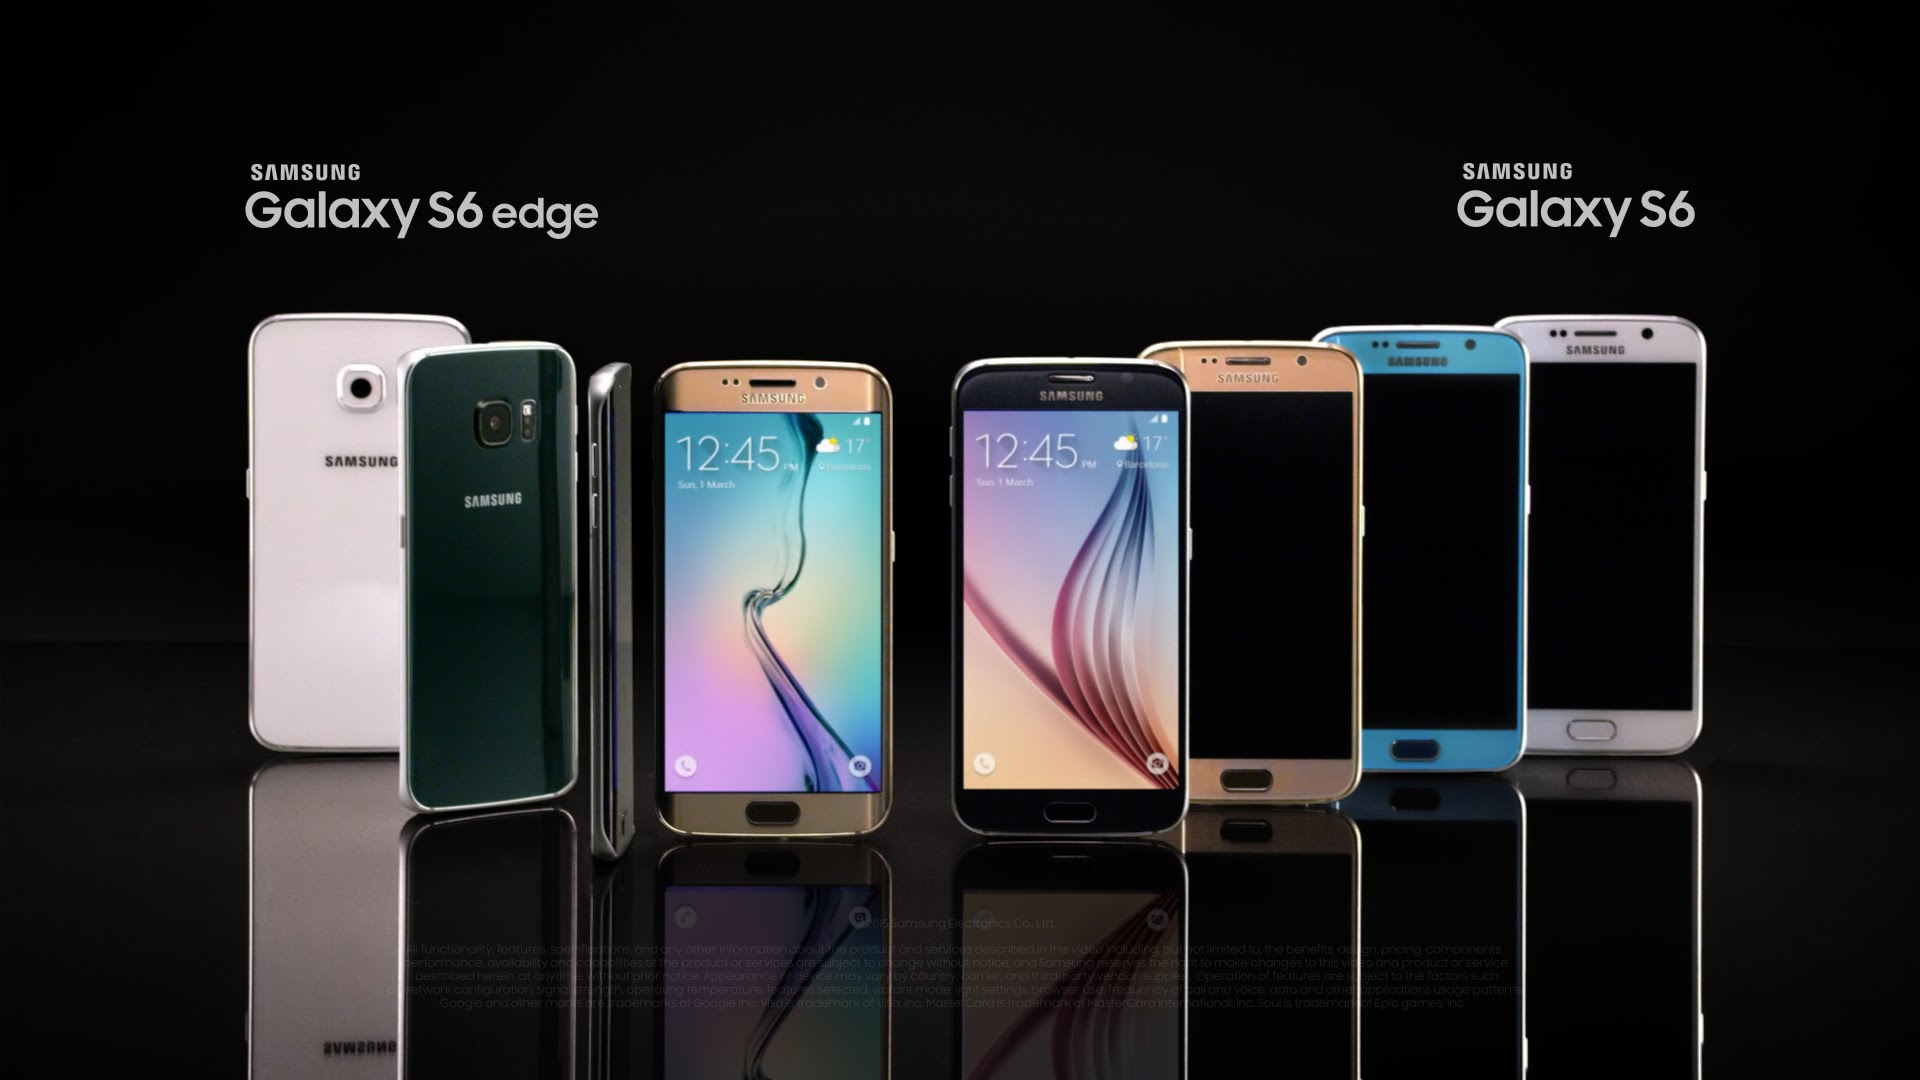 Samsung Galaxy S6 and S6 edge - Official Introduction